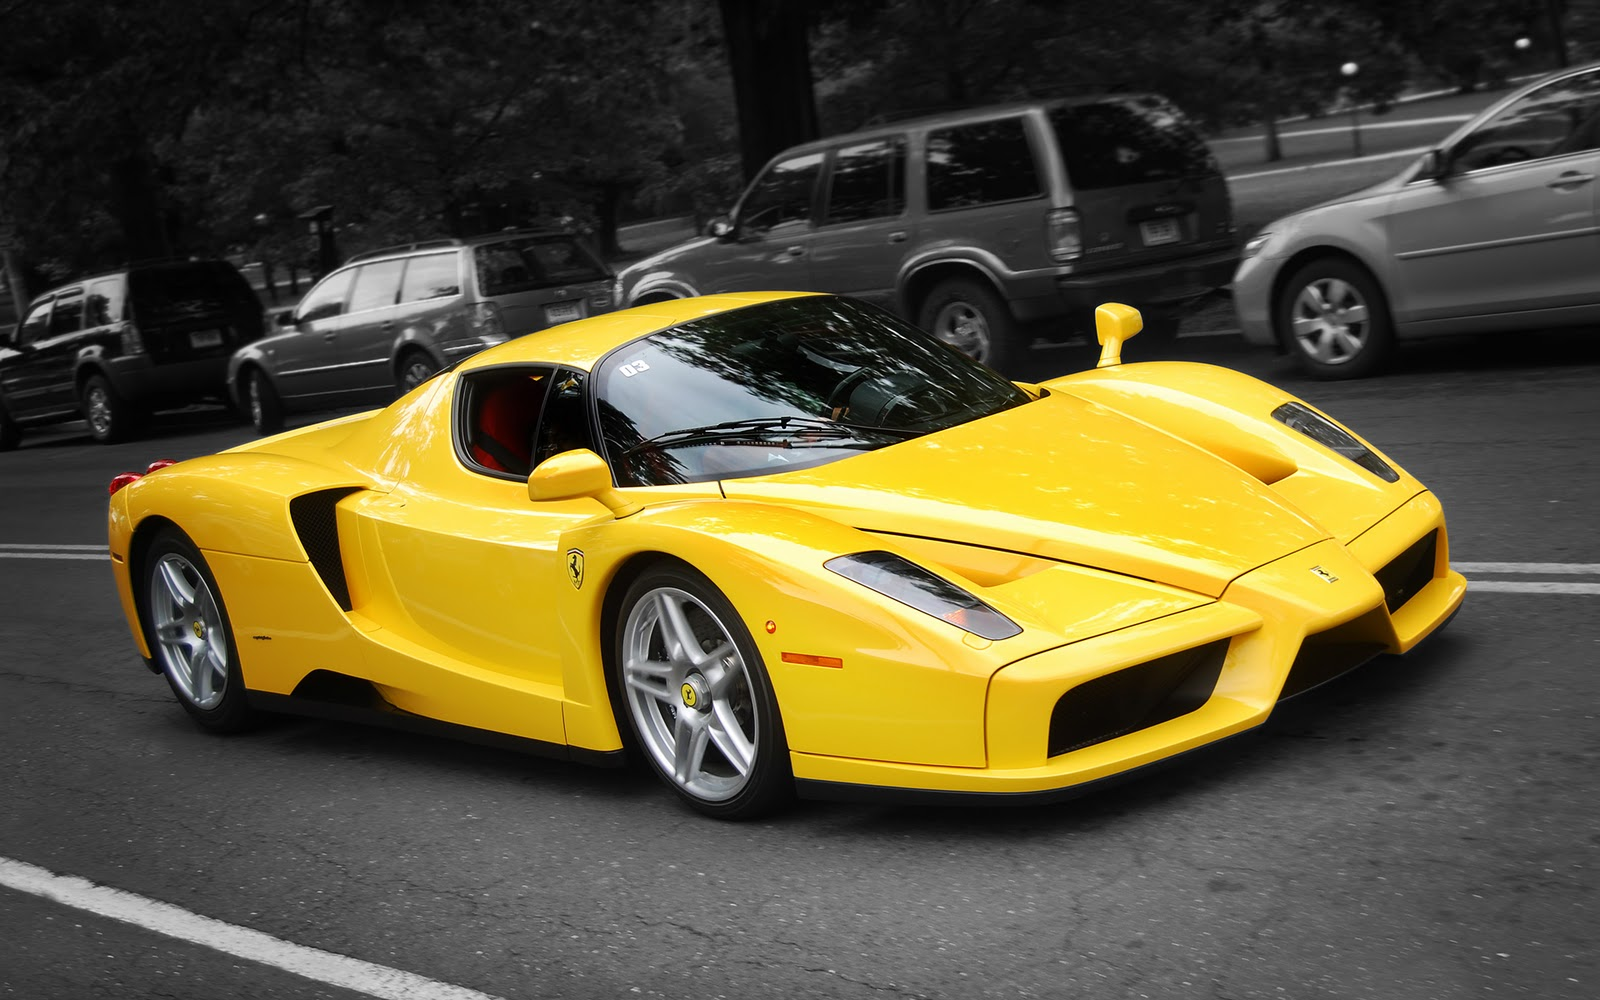 Yellow Ferrari Enzo 2012 supercars wallpapers The Wallpaper Database 1600x1000